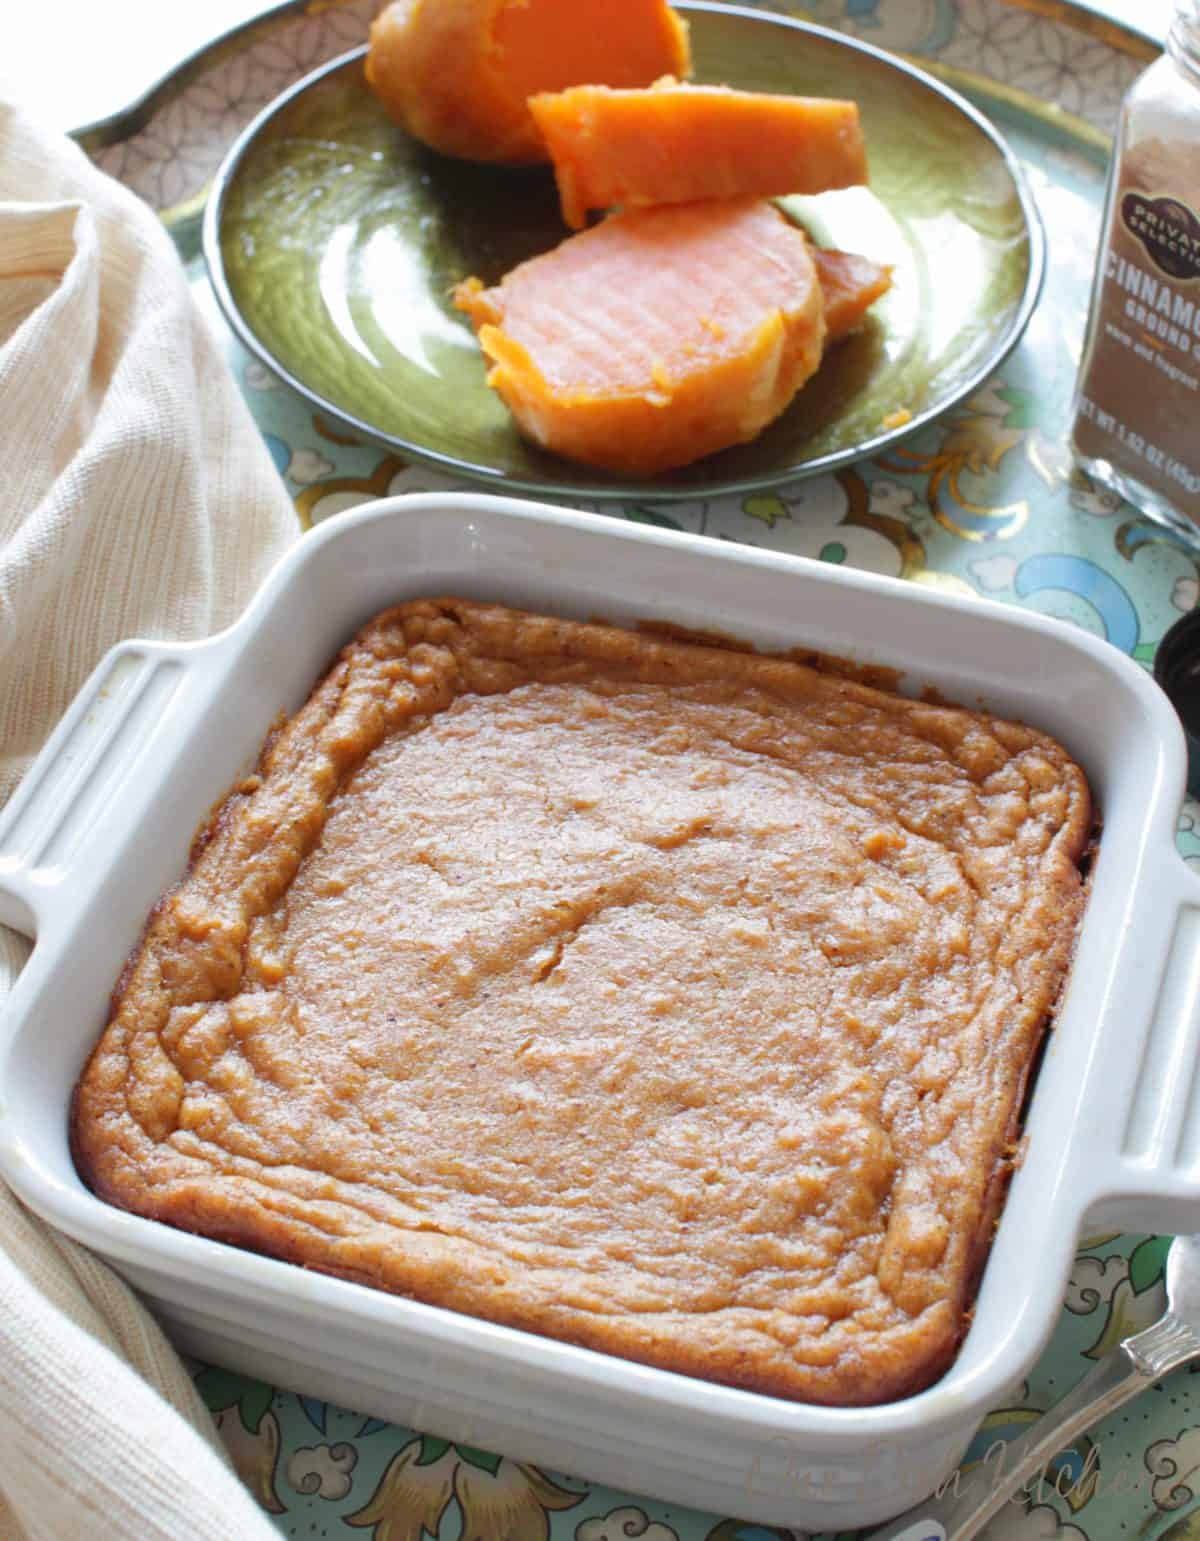 A sweet potato pie in a small baking dish on a tray with a sliced up sweet potato on a plate behind it and a shaker of ground cinnamon